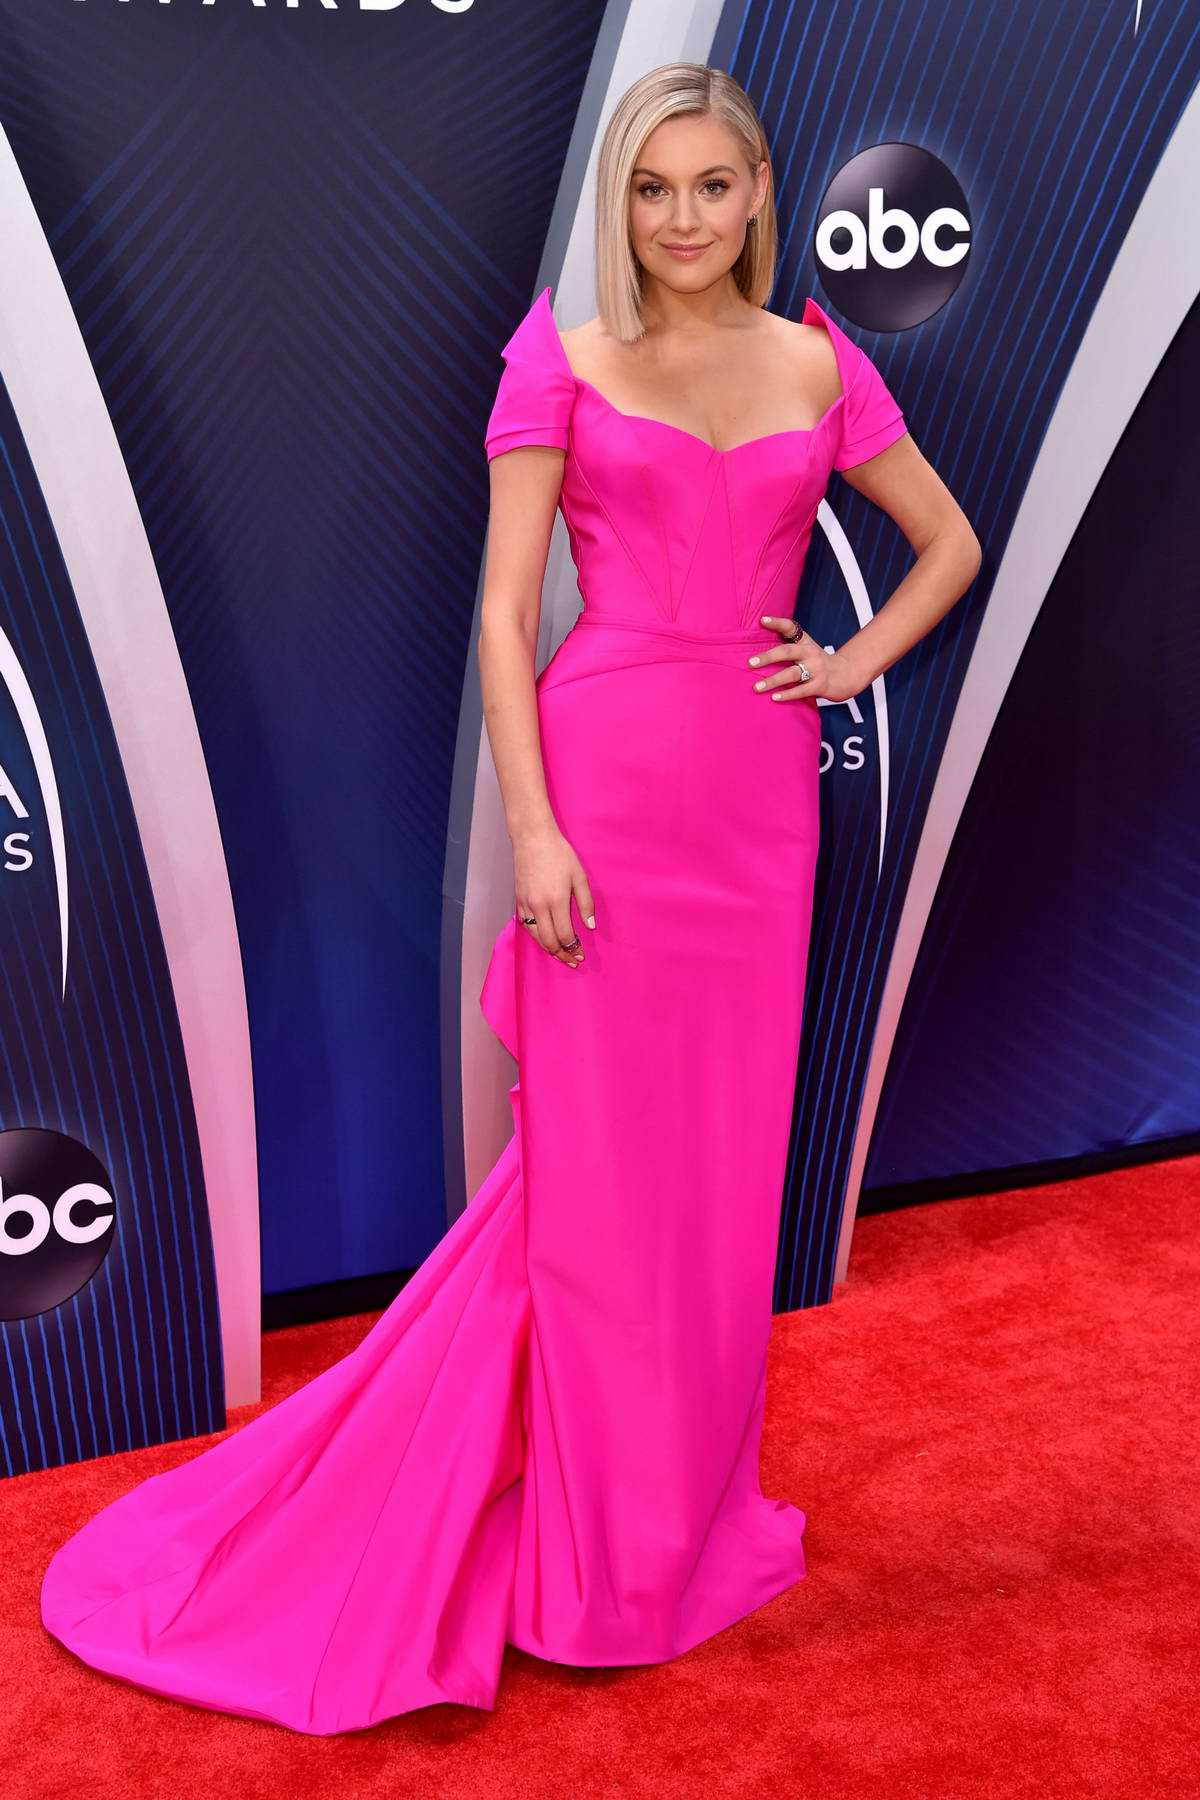 Kelsea Ballerini attends 52nd annual CMA Awards at the Bridgestone Arena in Nashville, Tennessee